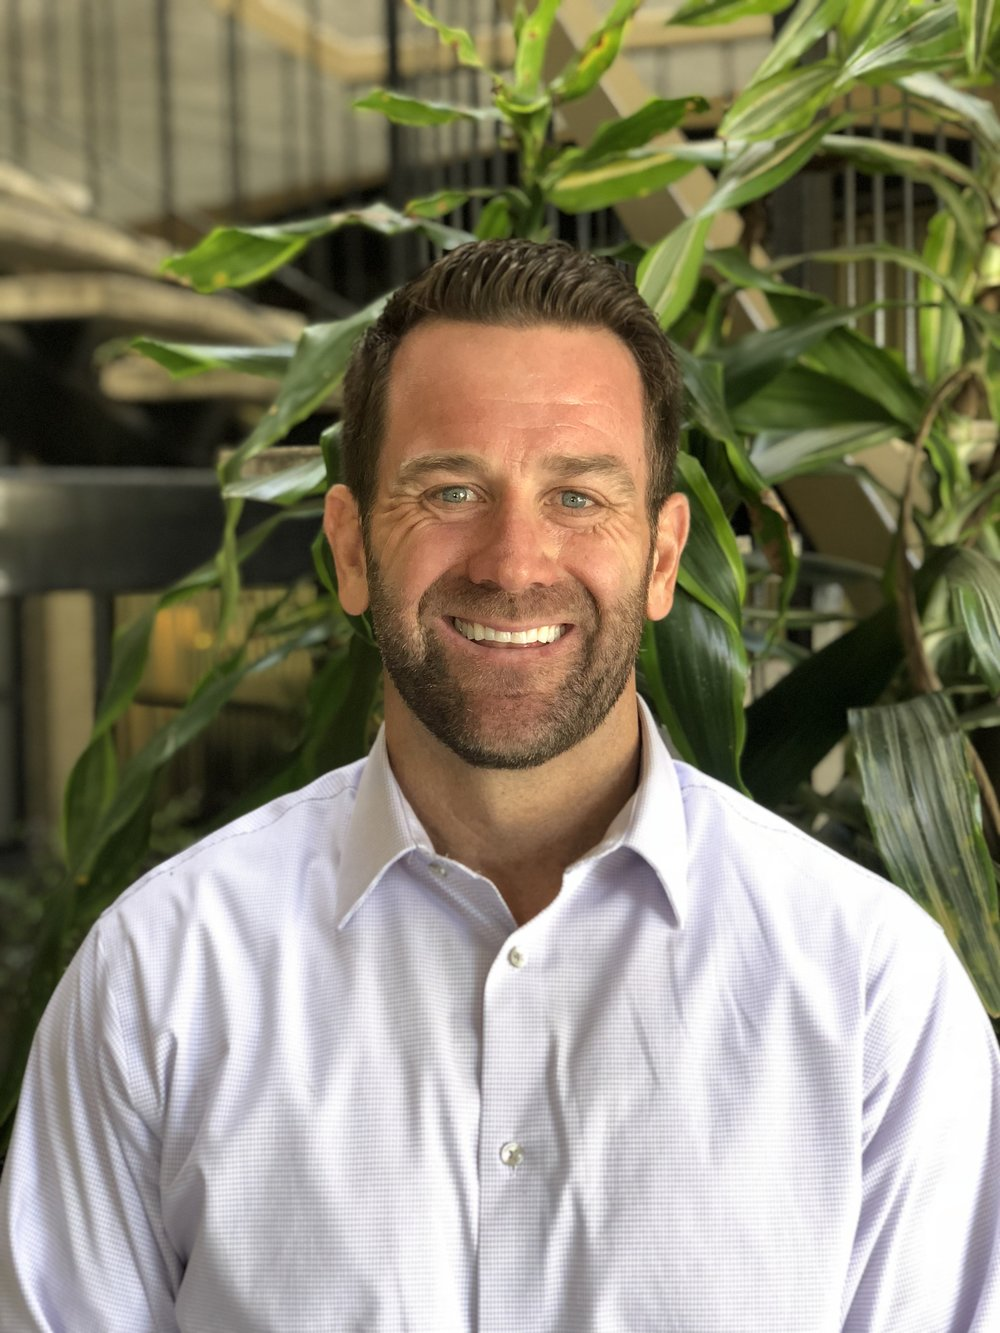 Aaron Hoke - Aaron Hoke joined AIMin 1998, and became involved in management just two years later. In the years 2001 and 2002, Aaron had won AIM?s prestigious TOP Organization award. Aaron qualified for the AIM Executive Committeein 2001, and continues to work out of the Anaheim office.